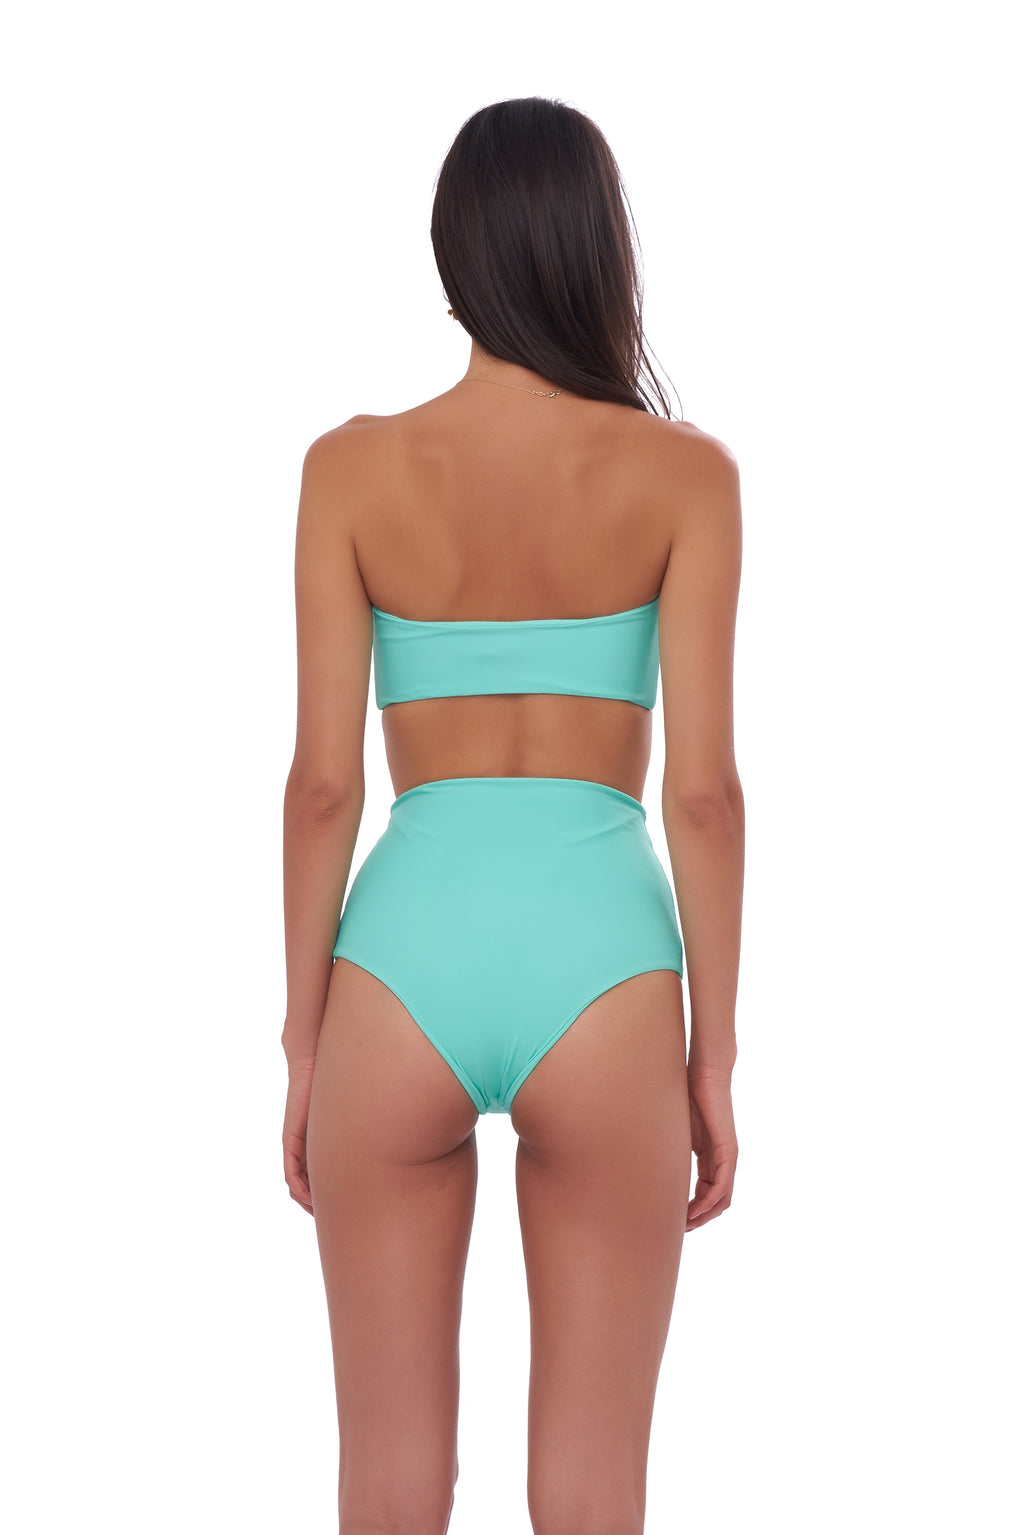 Storm Swimwear - Cannes - High Waist Bikini Bottom in Aquamarine